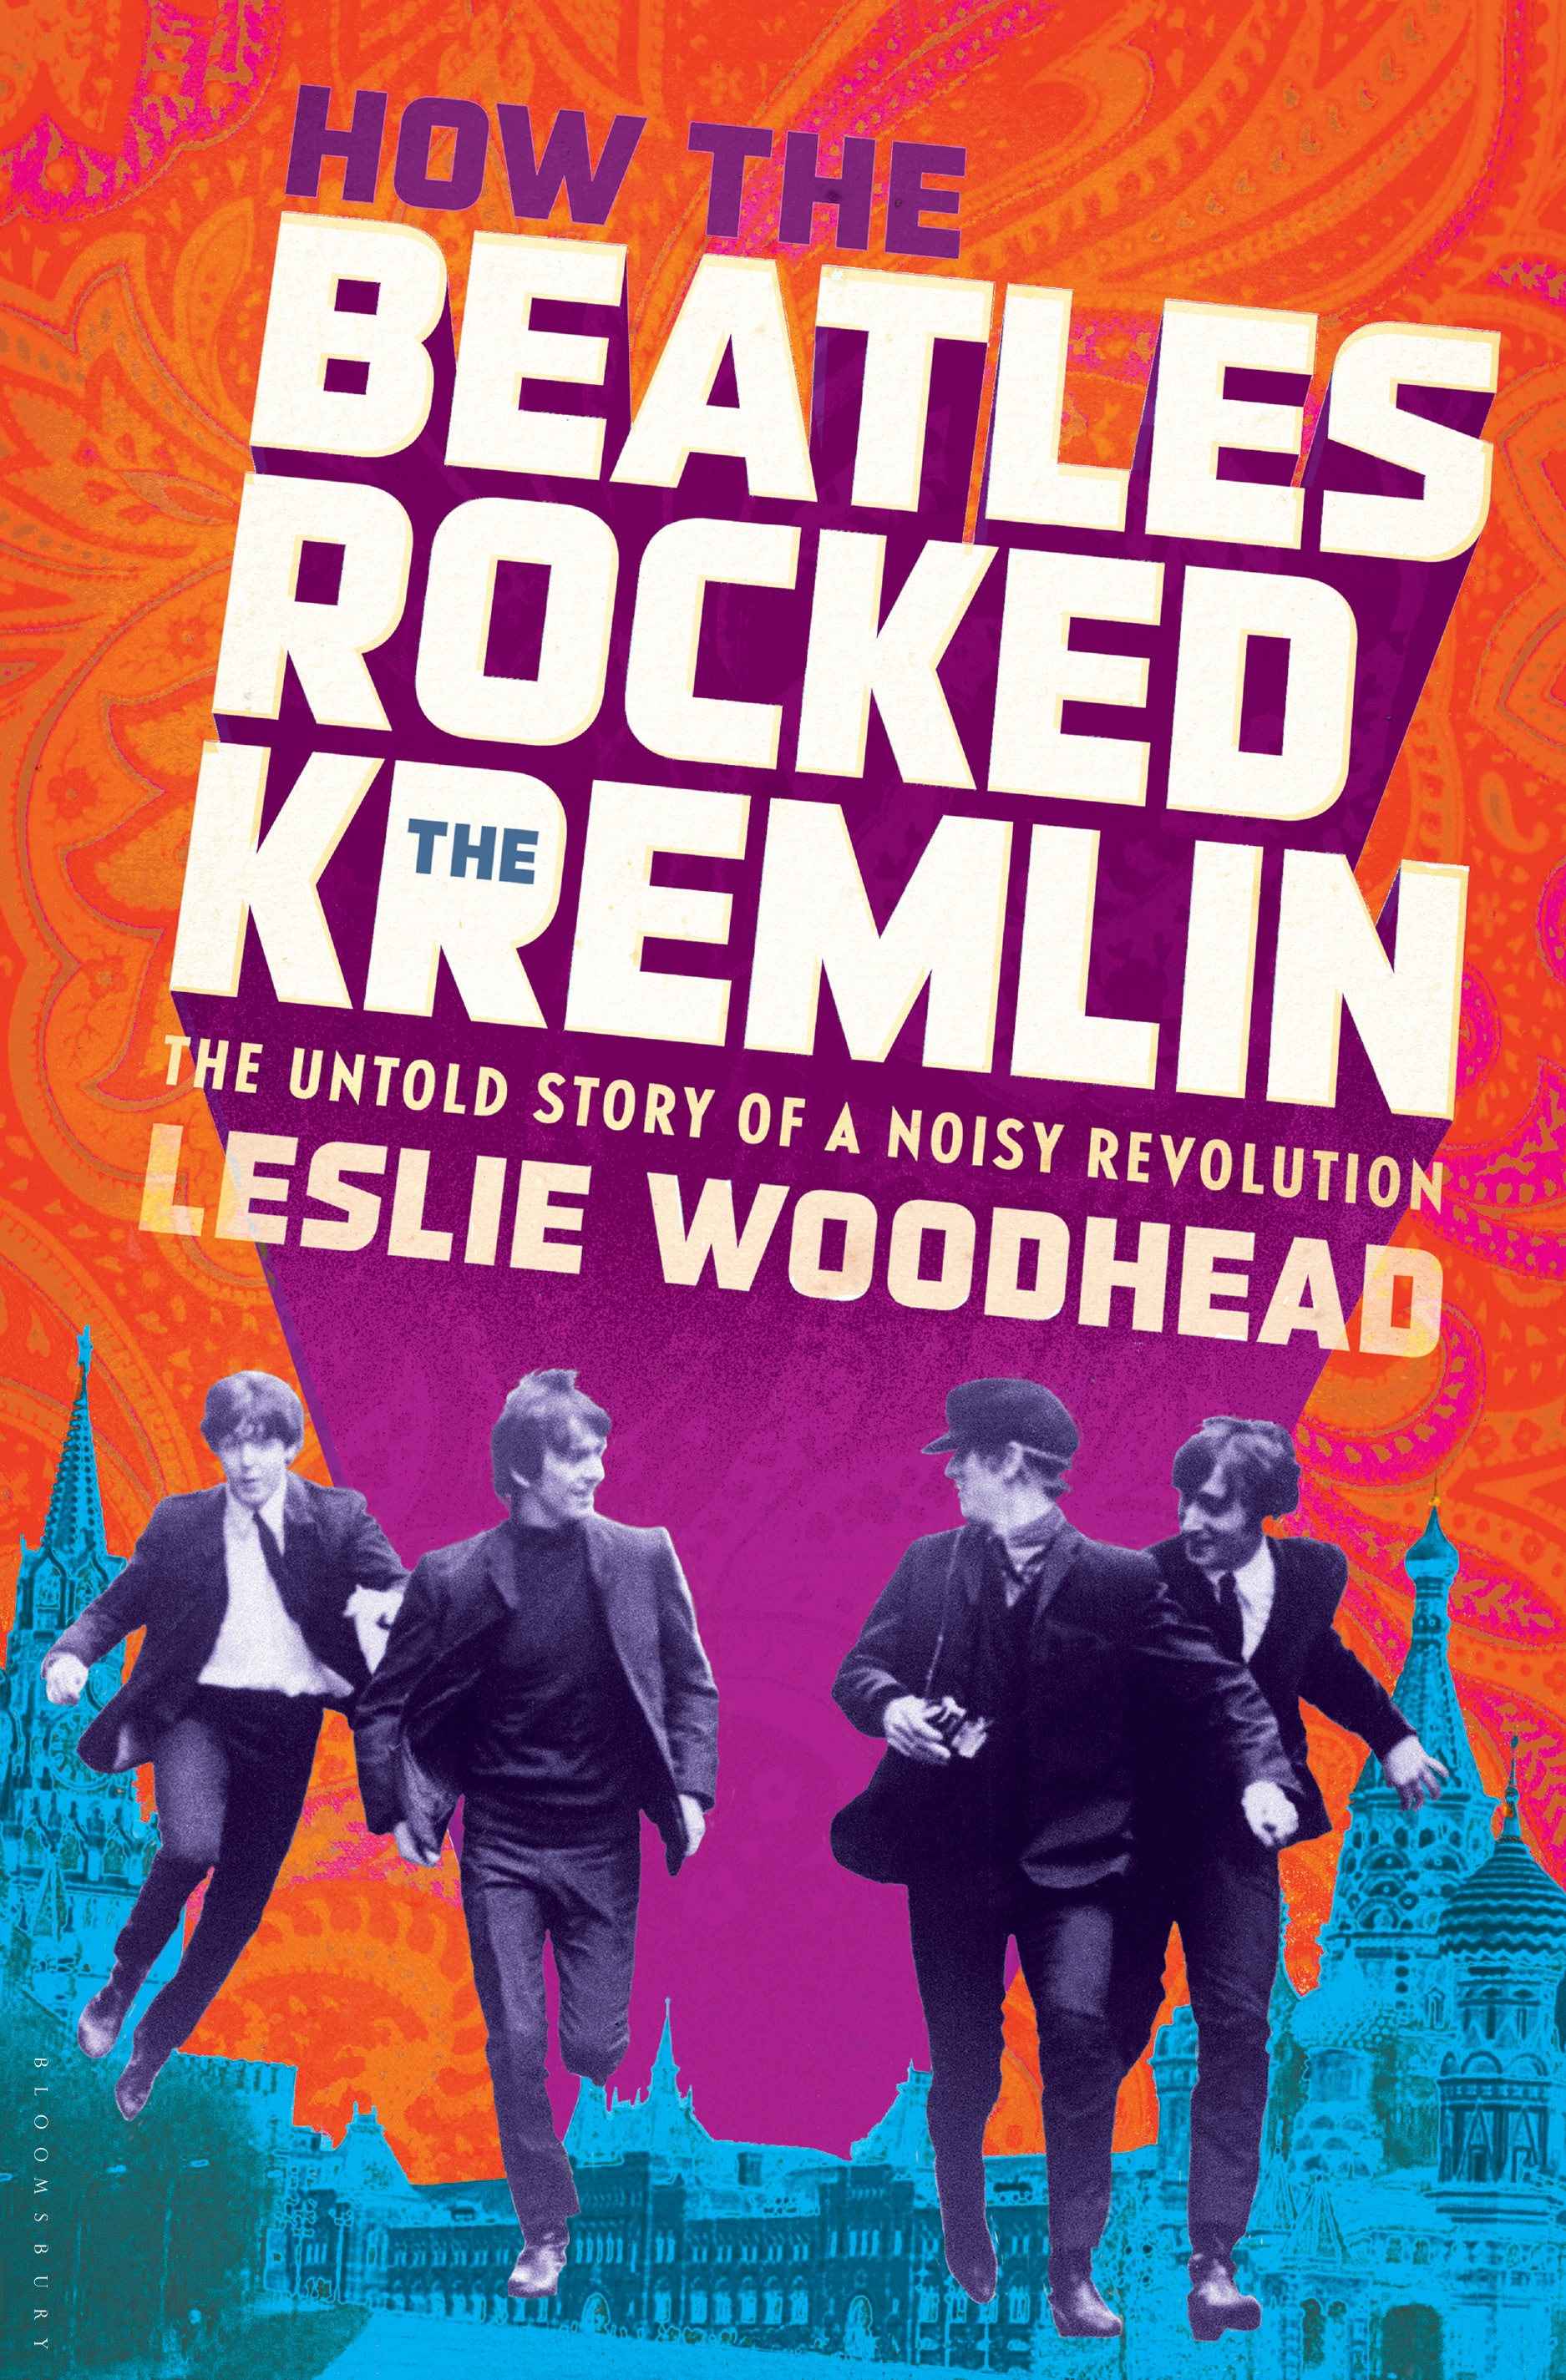 How the Beatles Rocked the Kremlin The Untold Story of a Noisy Revolution